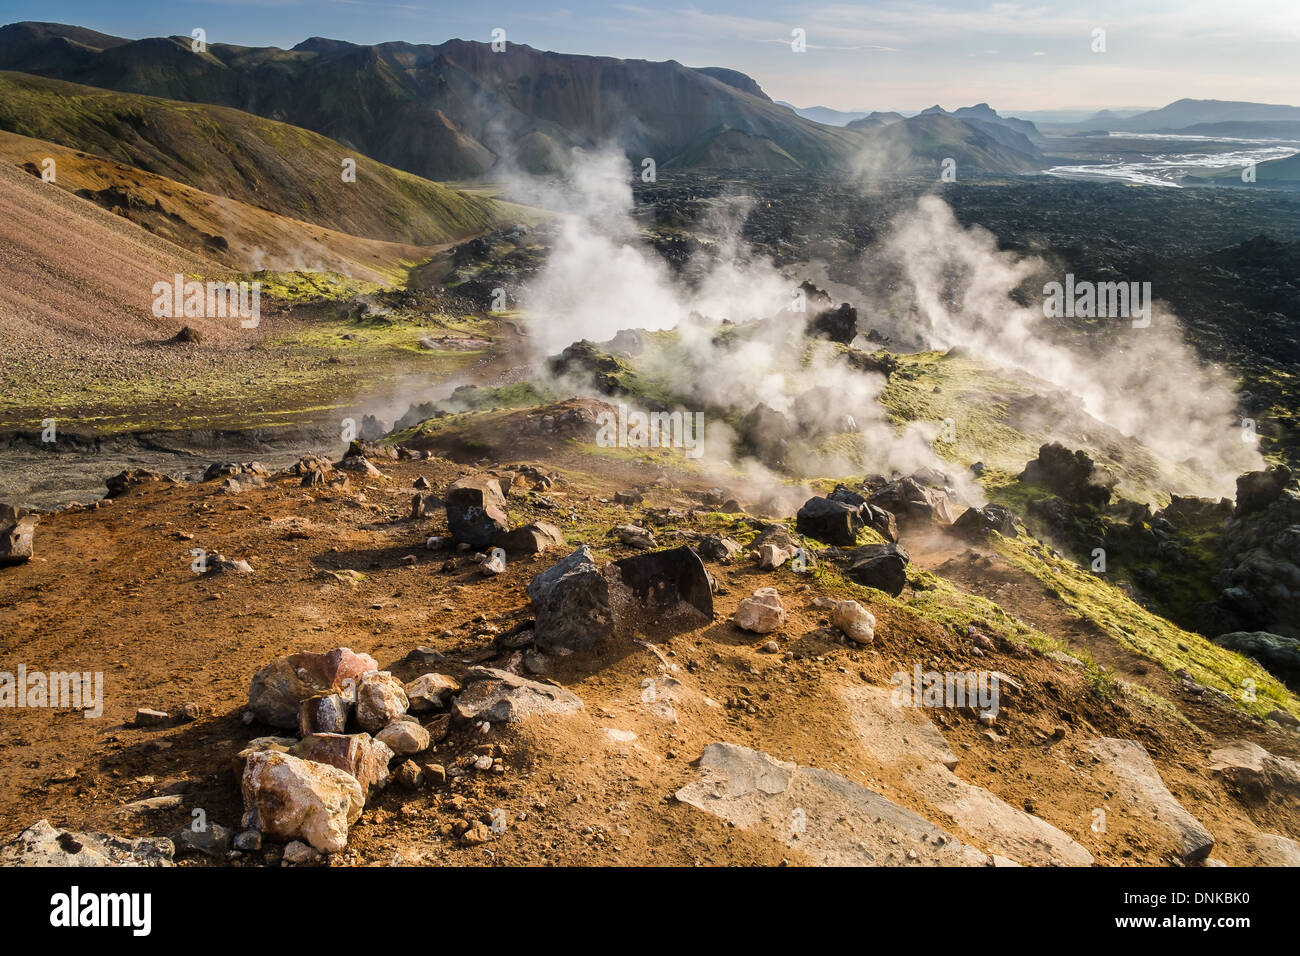 Steam vents and old lava flows, Landmannalaugar, Iceland - Stock Image